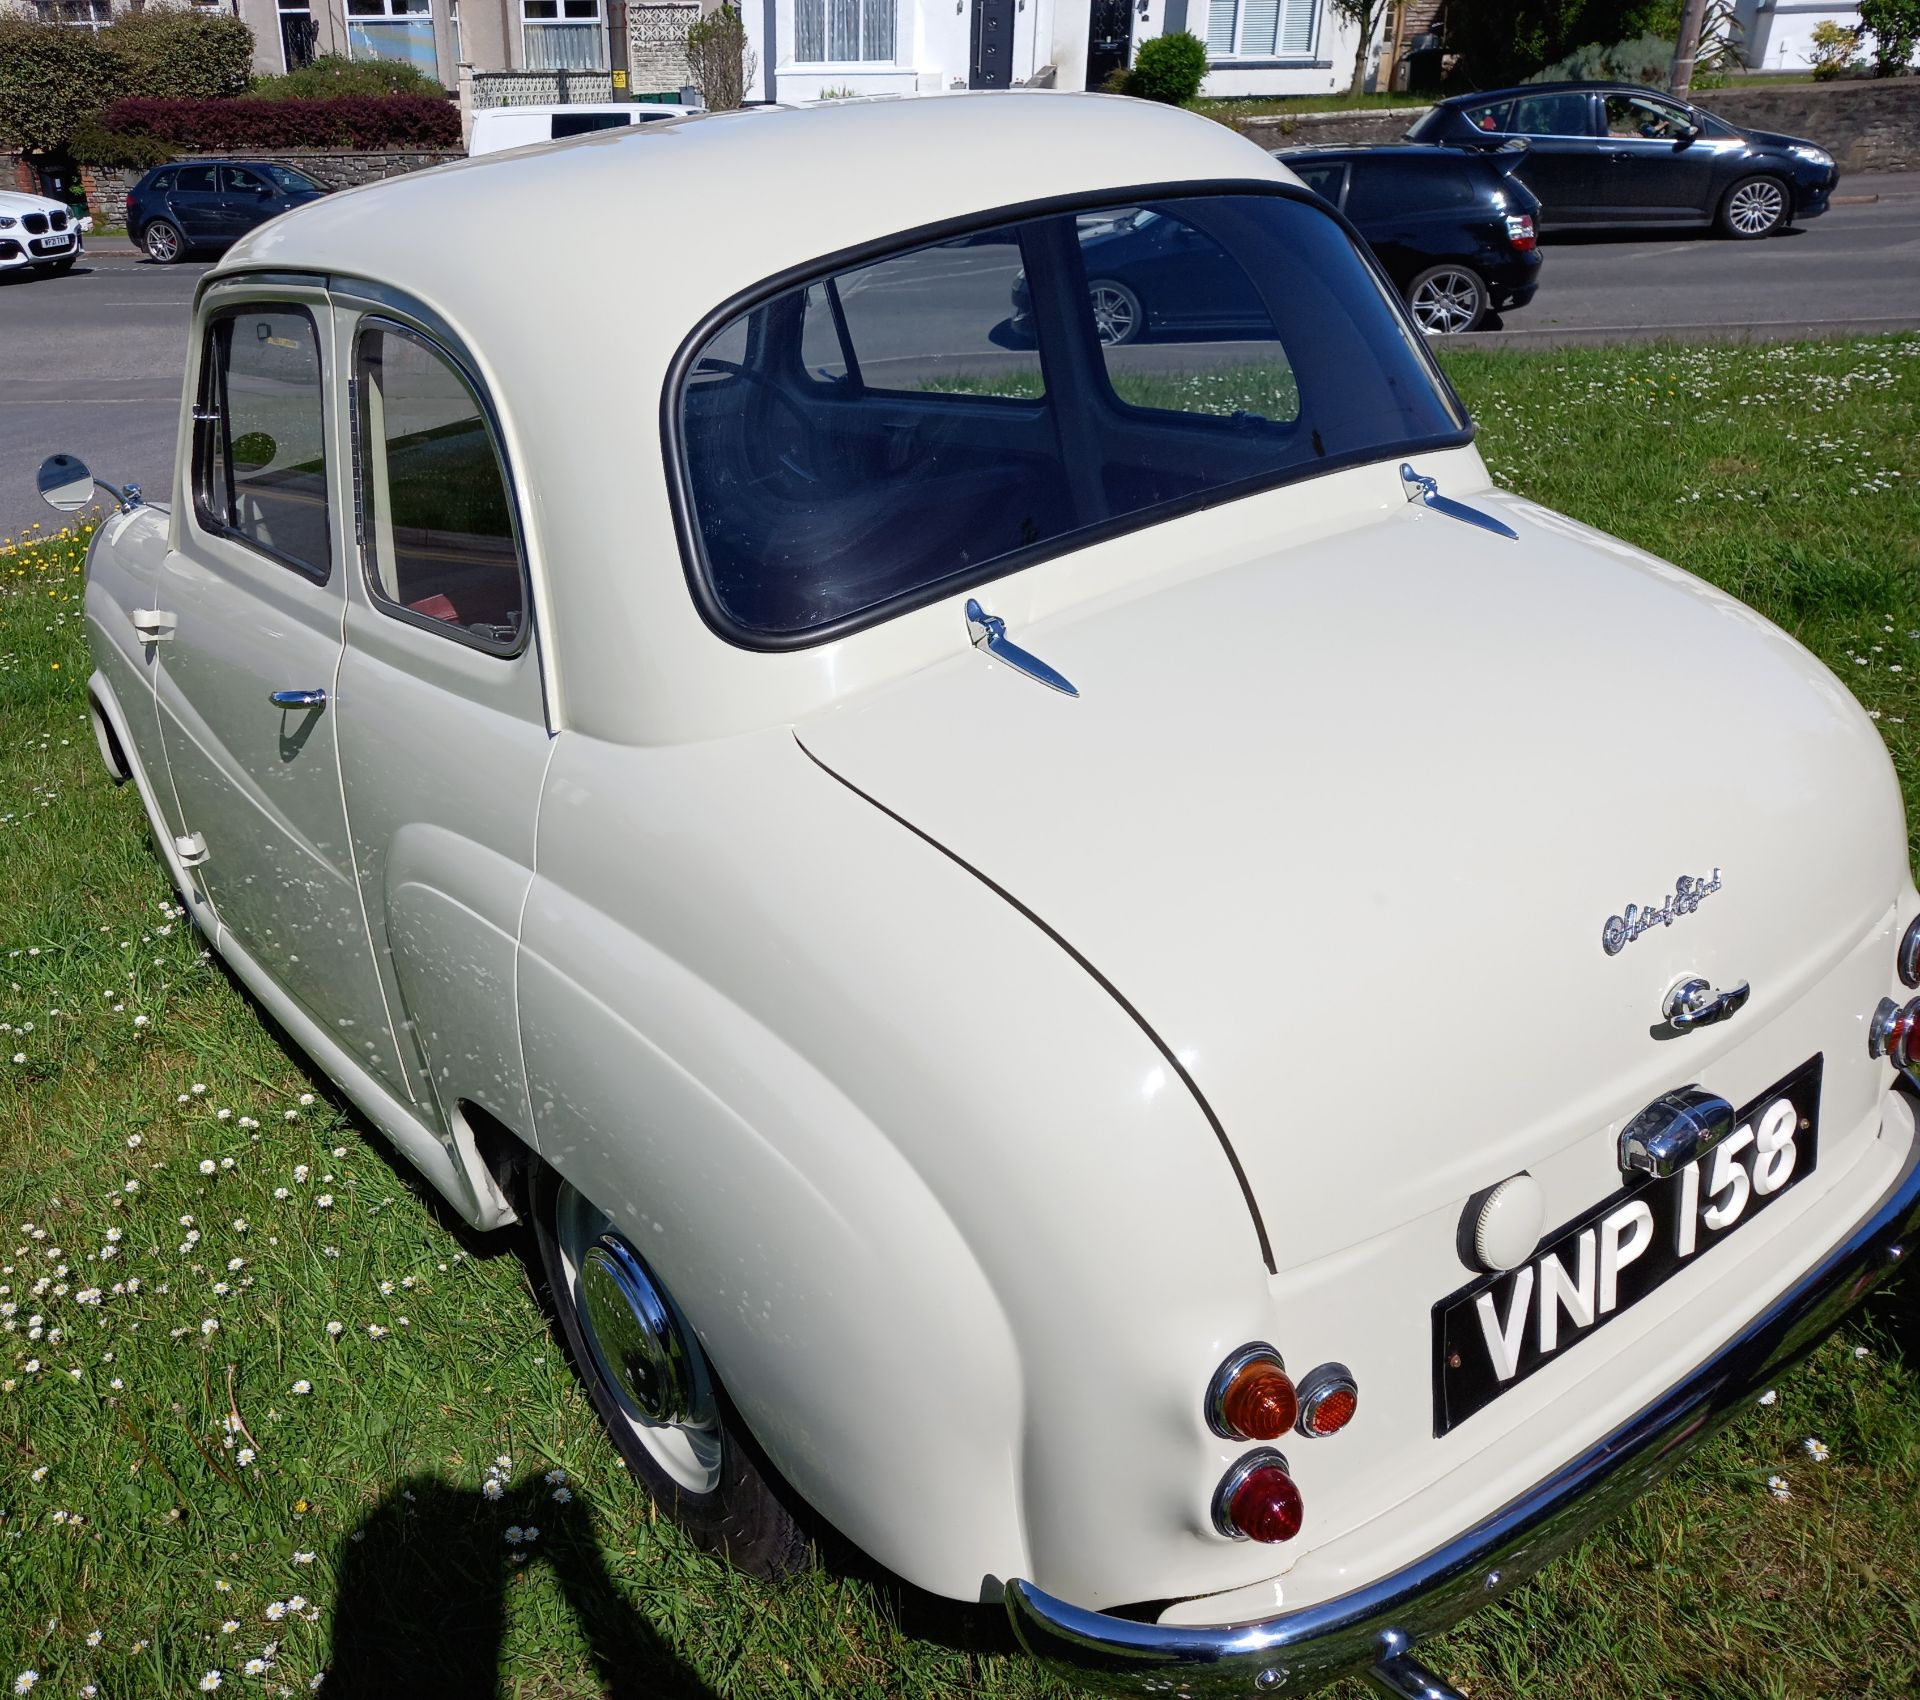 VNP 158 - 1958 AUSTIN A35 SALOON - 948CC - FULLY RESTORED CLASSIC CAR - Image 6 of 24